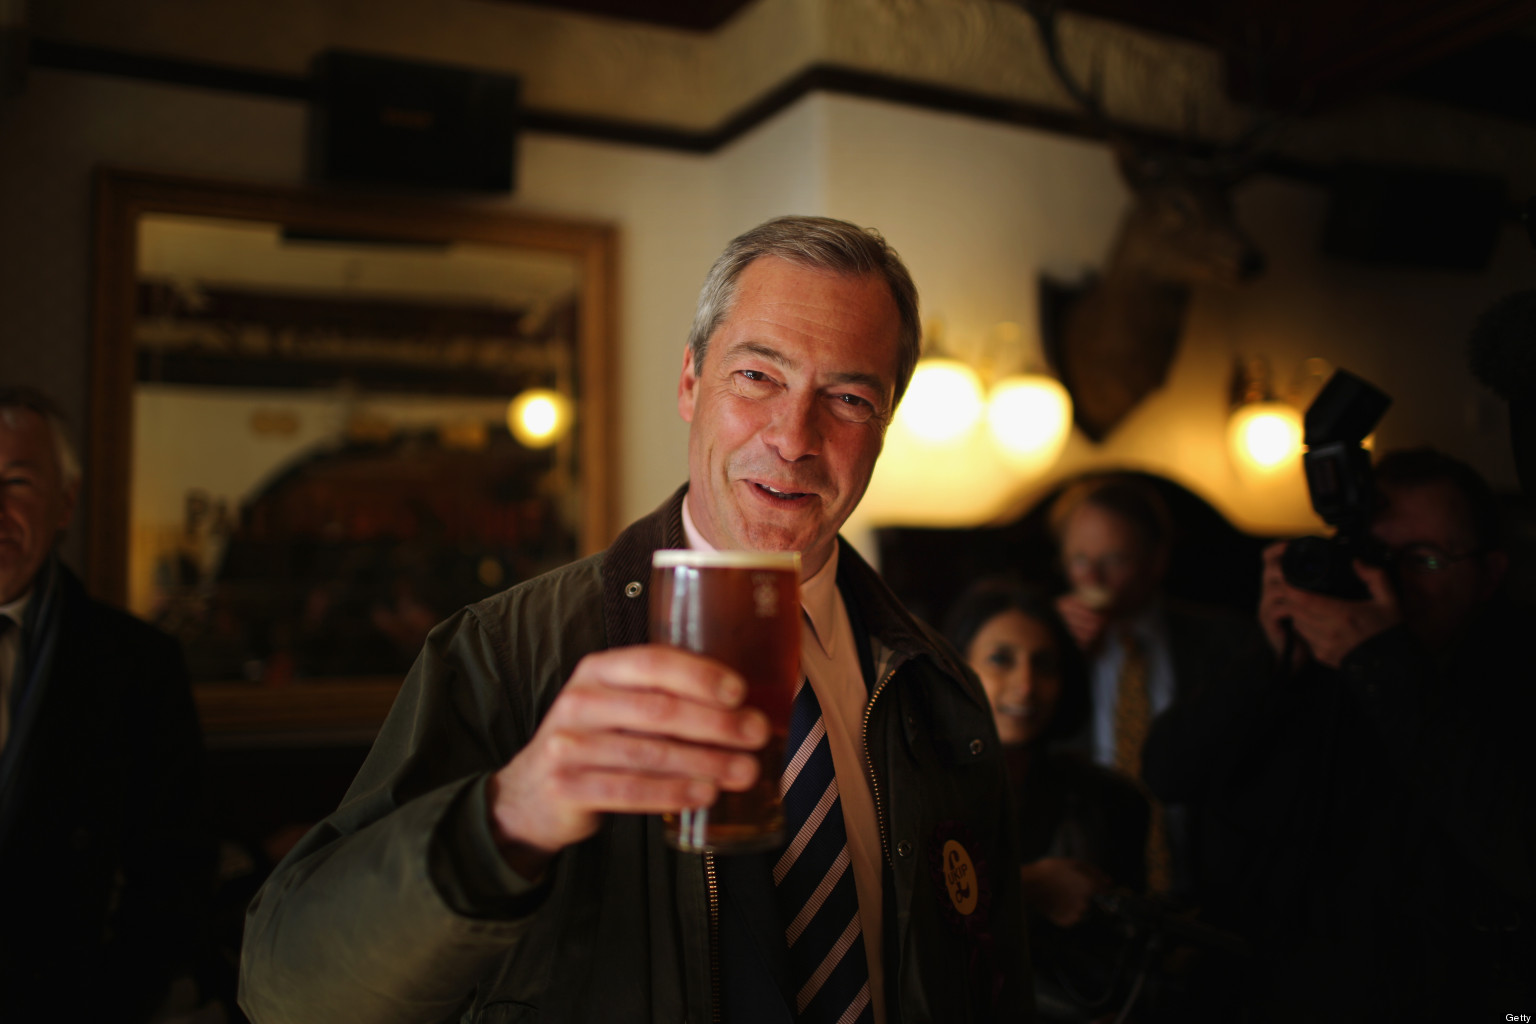 Cheers Nigel!